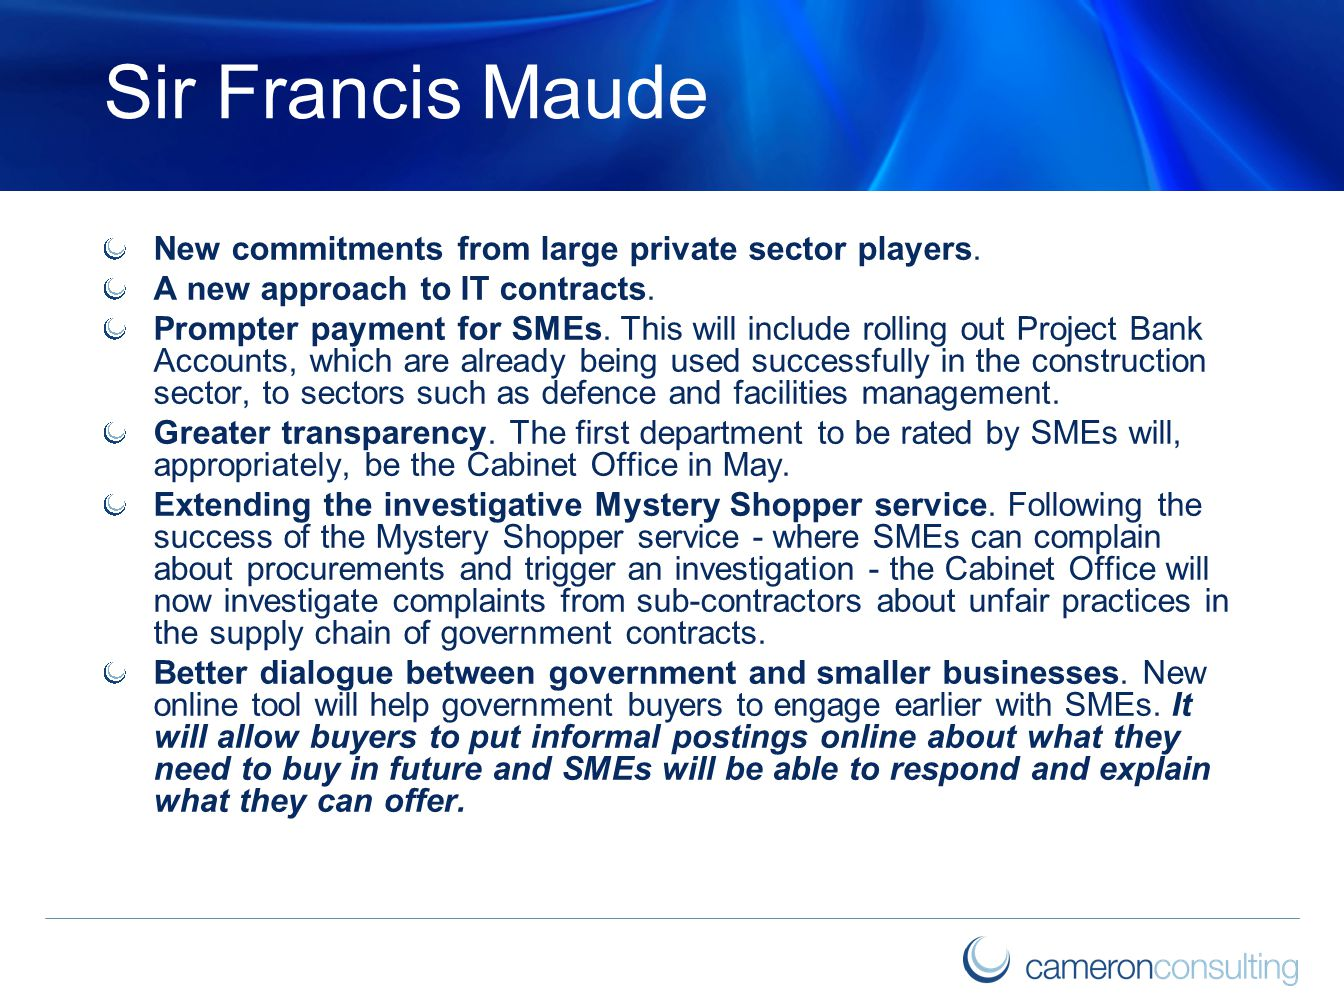 Sir Francis Maude New commitments from large private sector players. A new approach to IT contracts. Prompter payment for SMEs. This will include roll